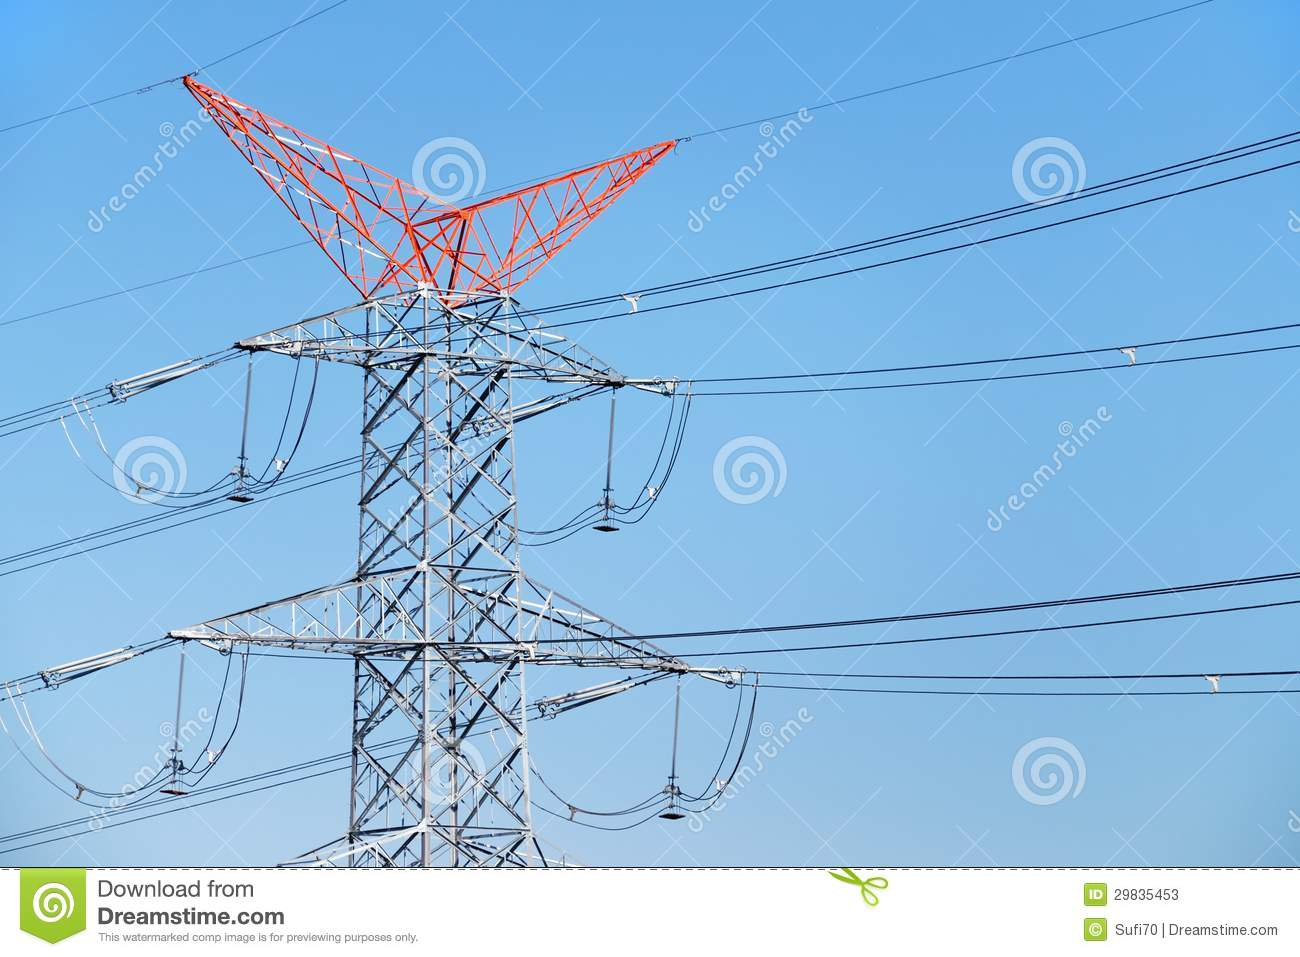 High Voltage Transmission Line Cable : Energy distribution lines stock photos image